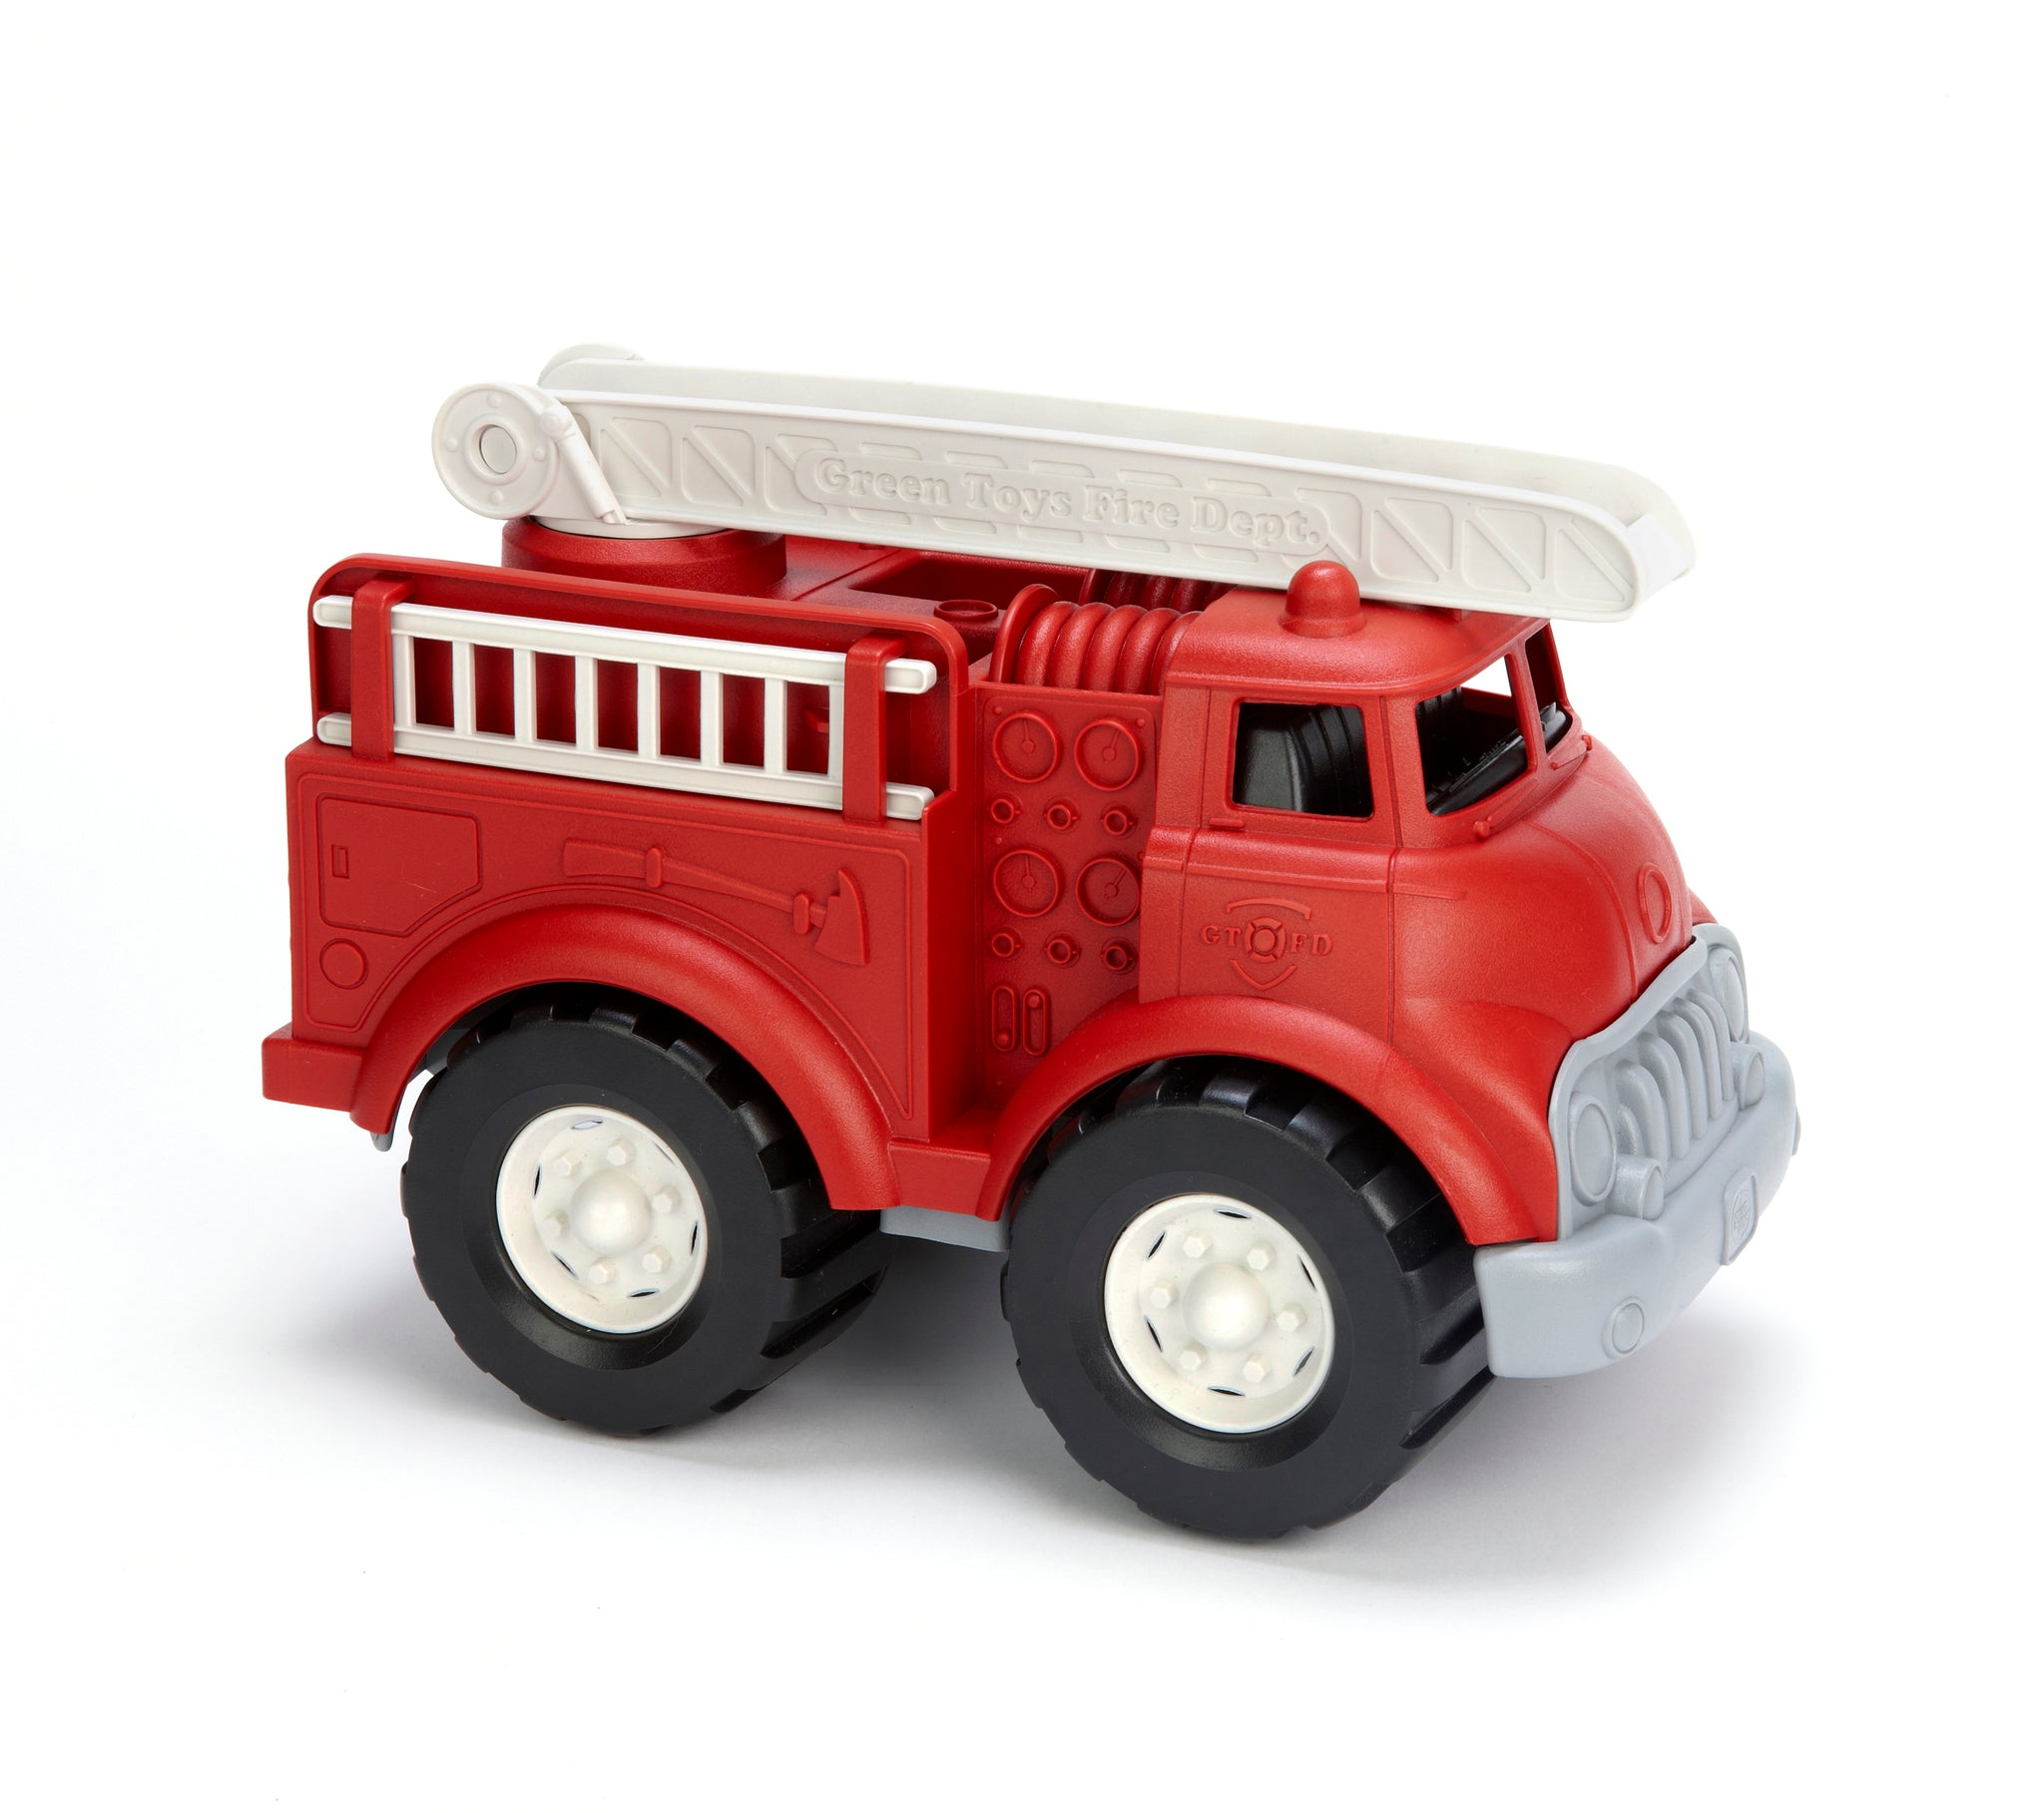 Fire Truck Green Toys Ecommerce